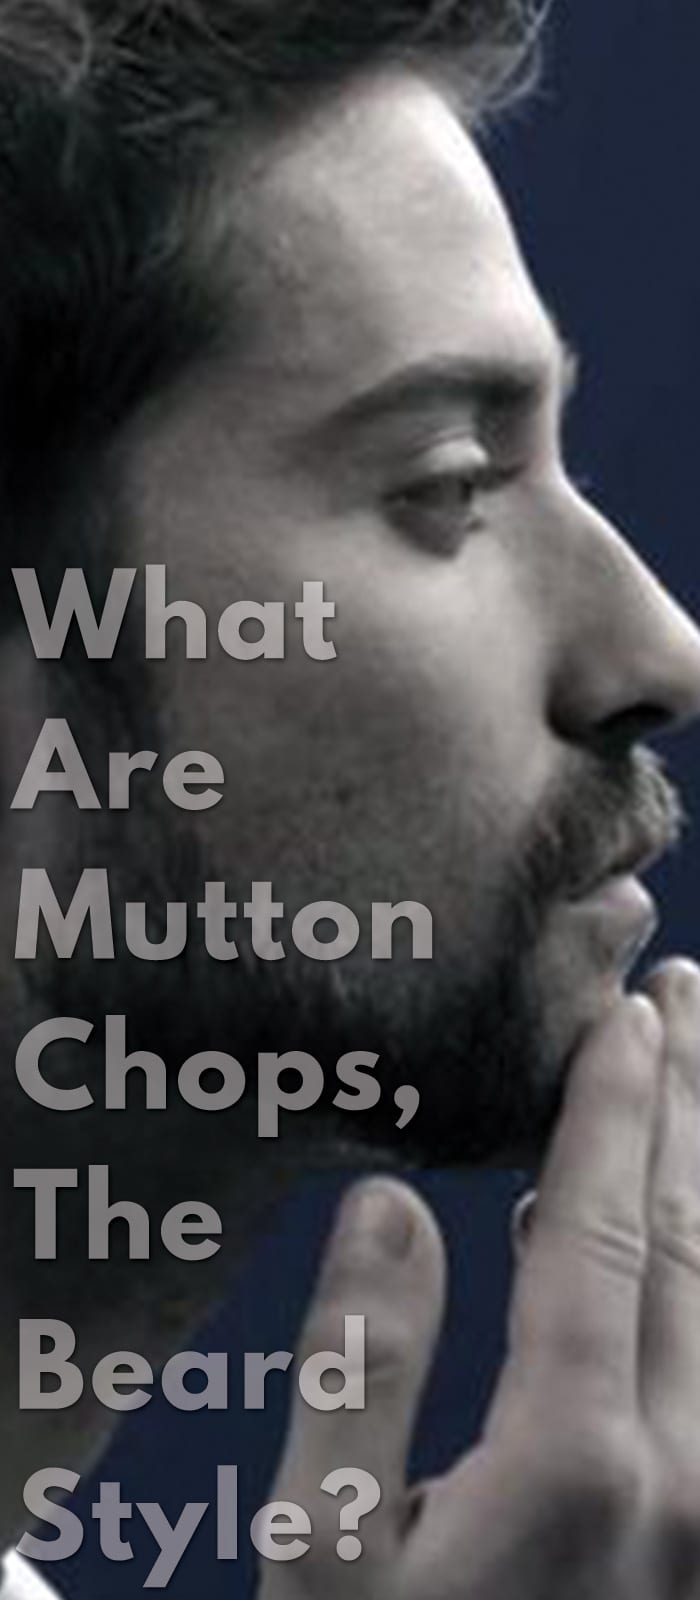 What-are-Mutton-Chops,-The-beard-style..